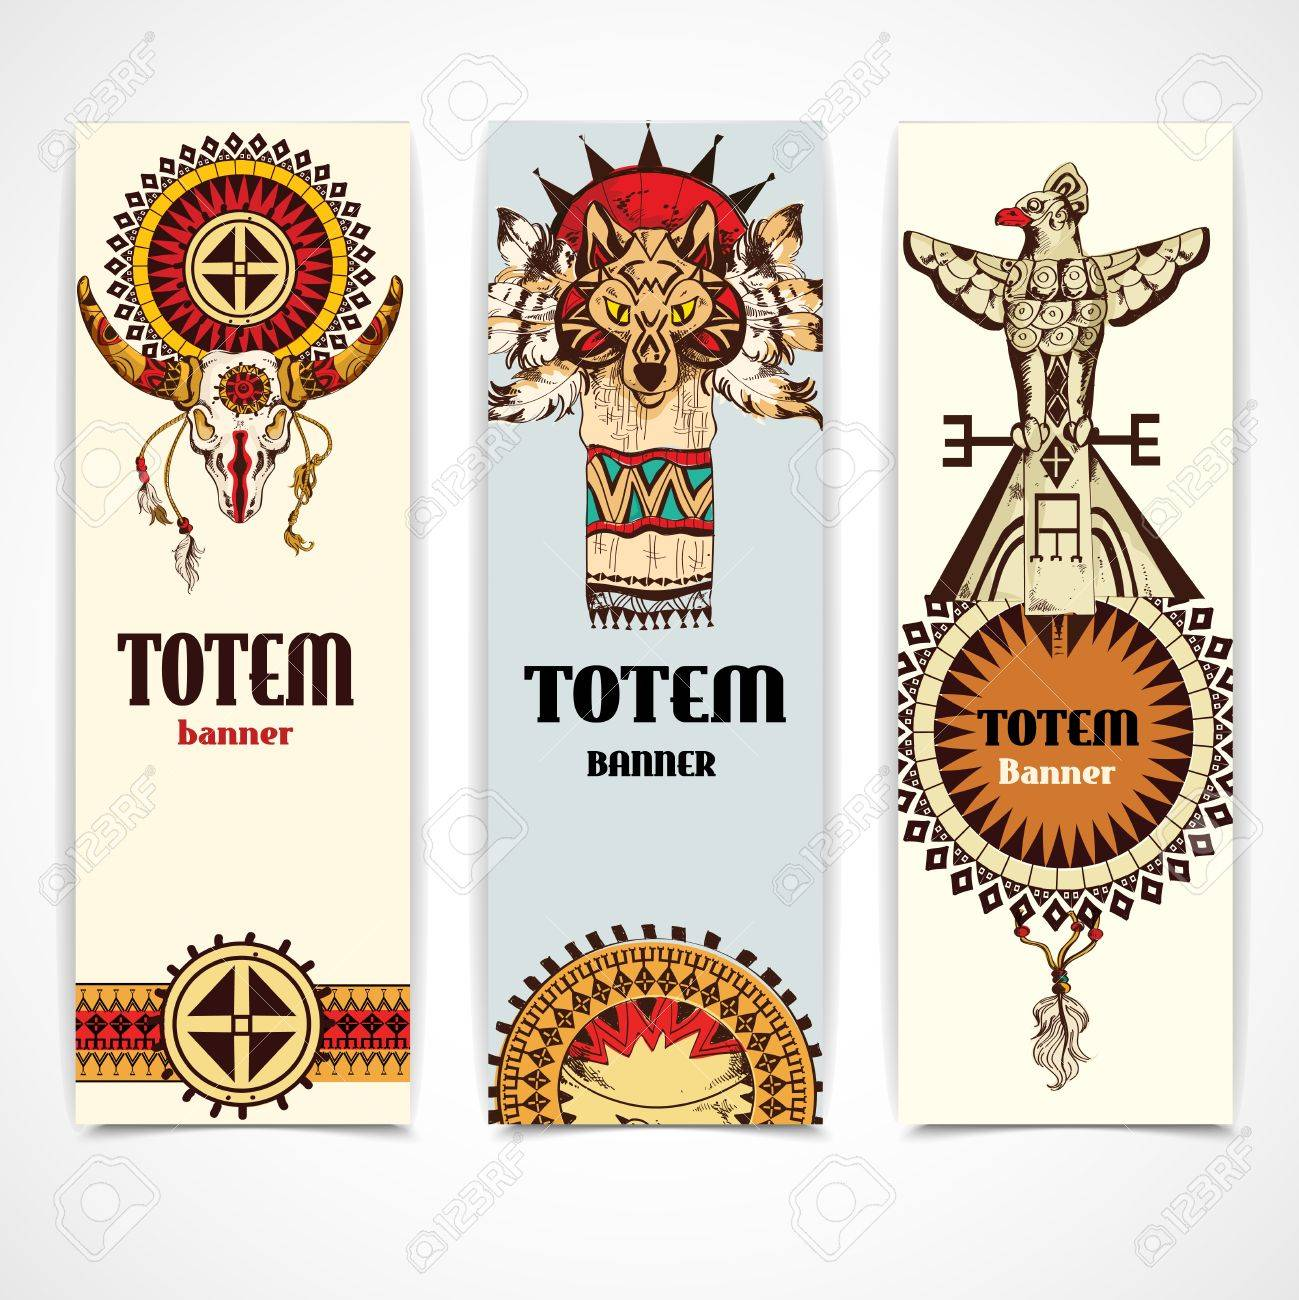 3 736 totem element stock vector illustration and royalty free